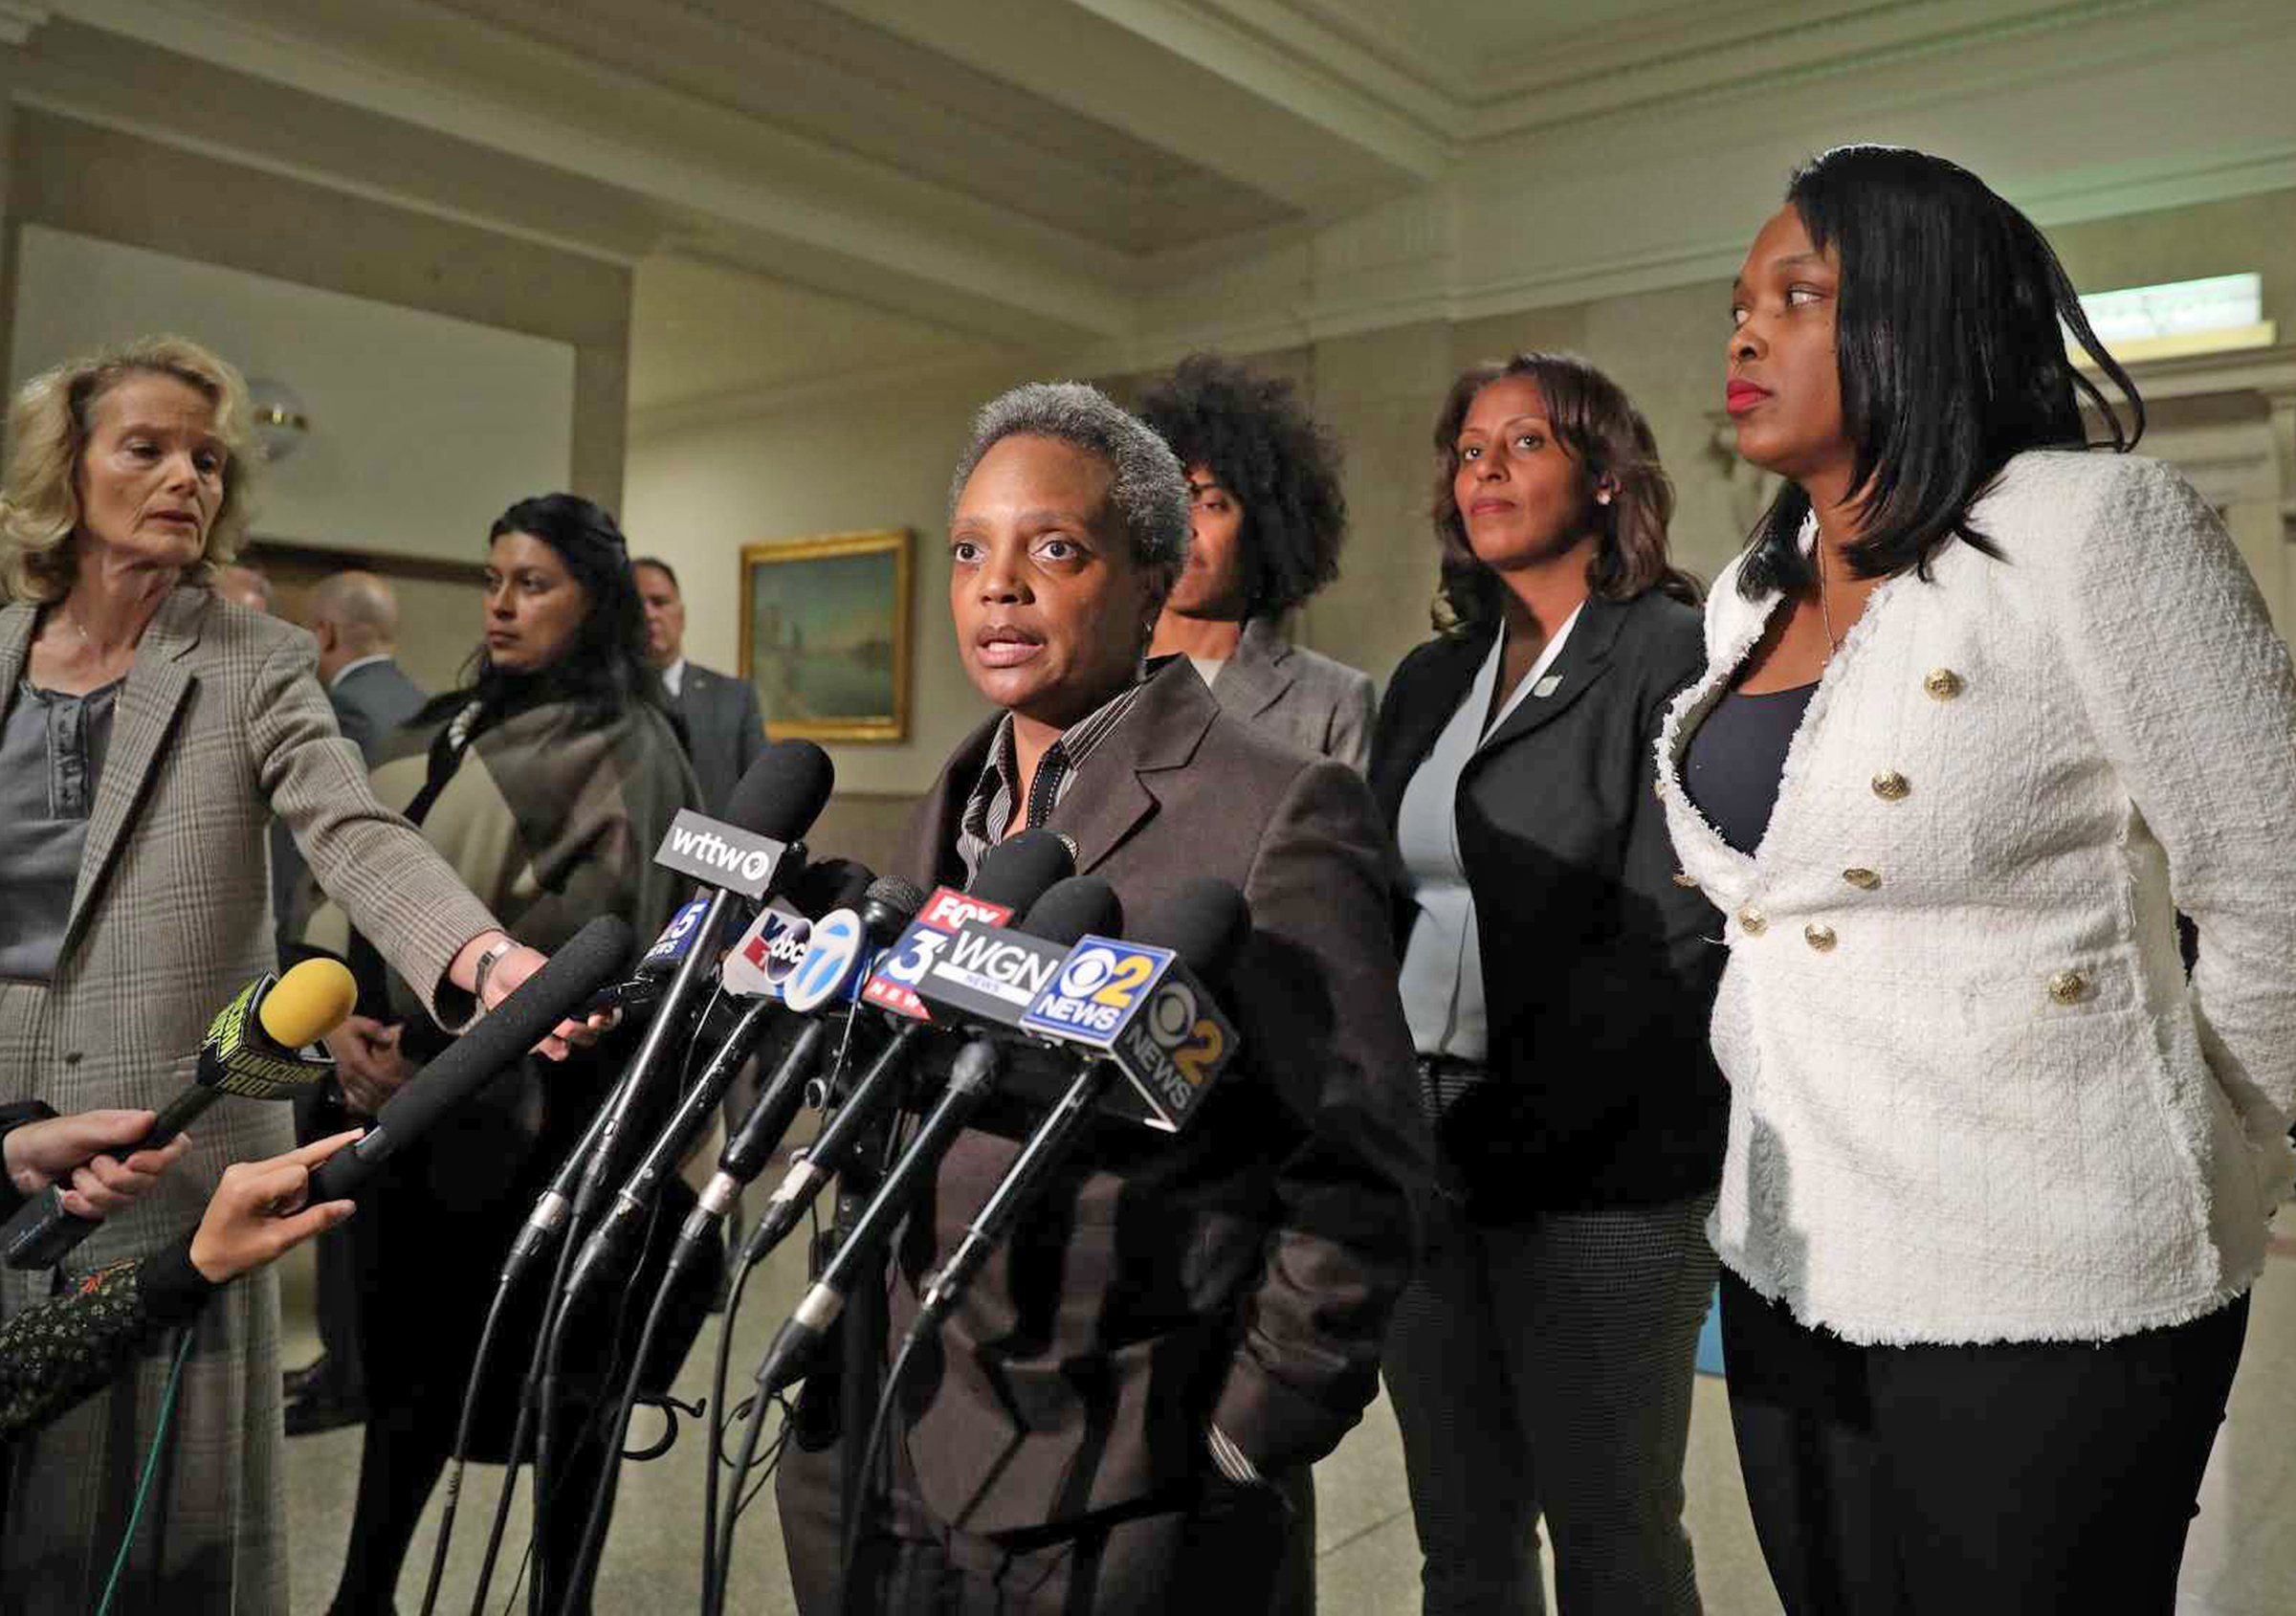 Mayor Lori Lightfoot on Thursday, discussing the deal reached with the Chicago Teachers Union that has halted their strike.